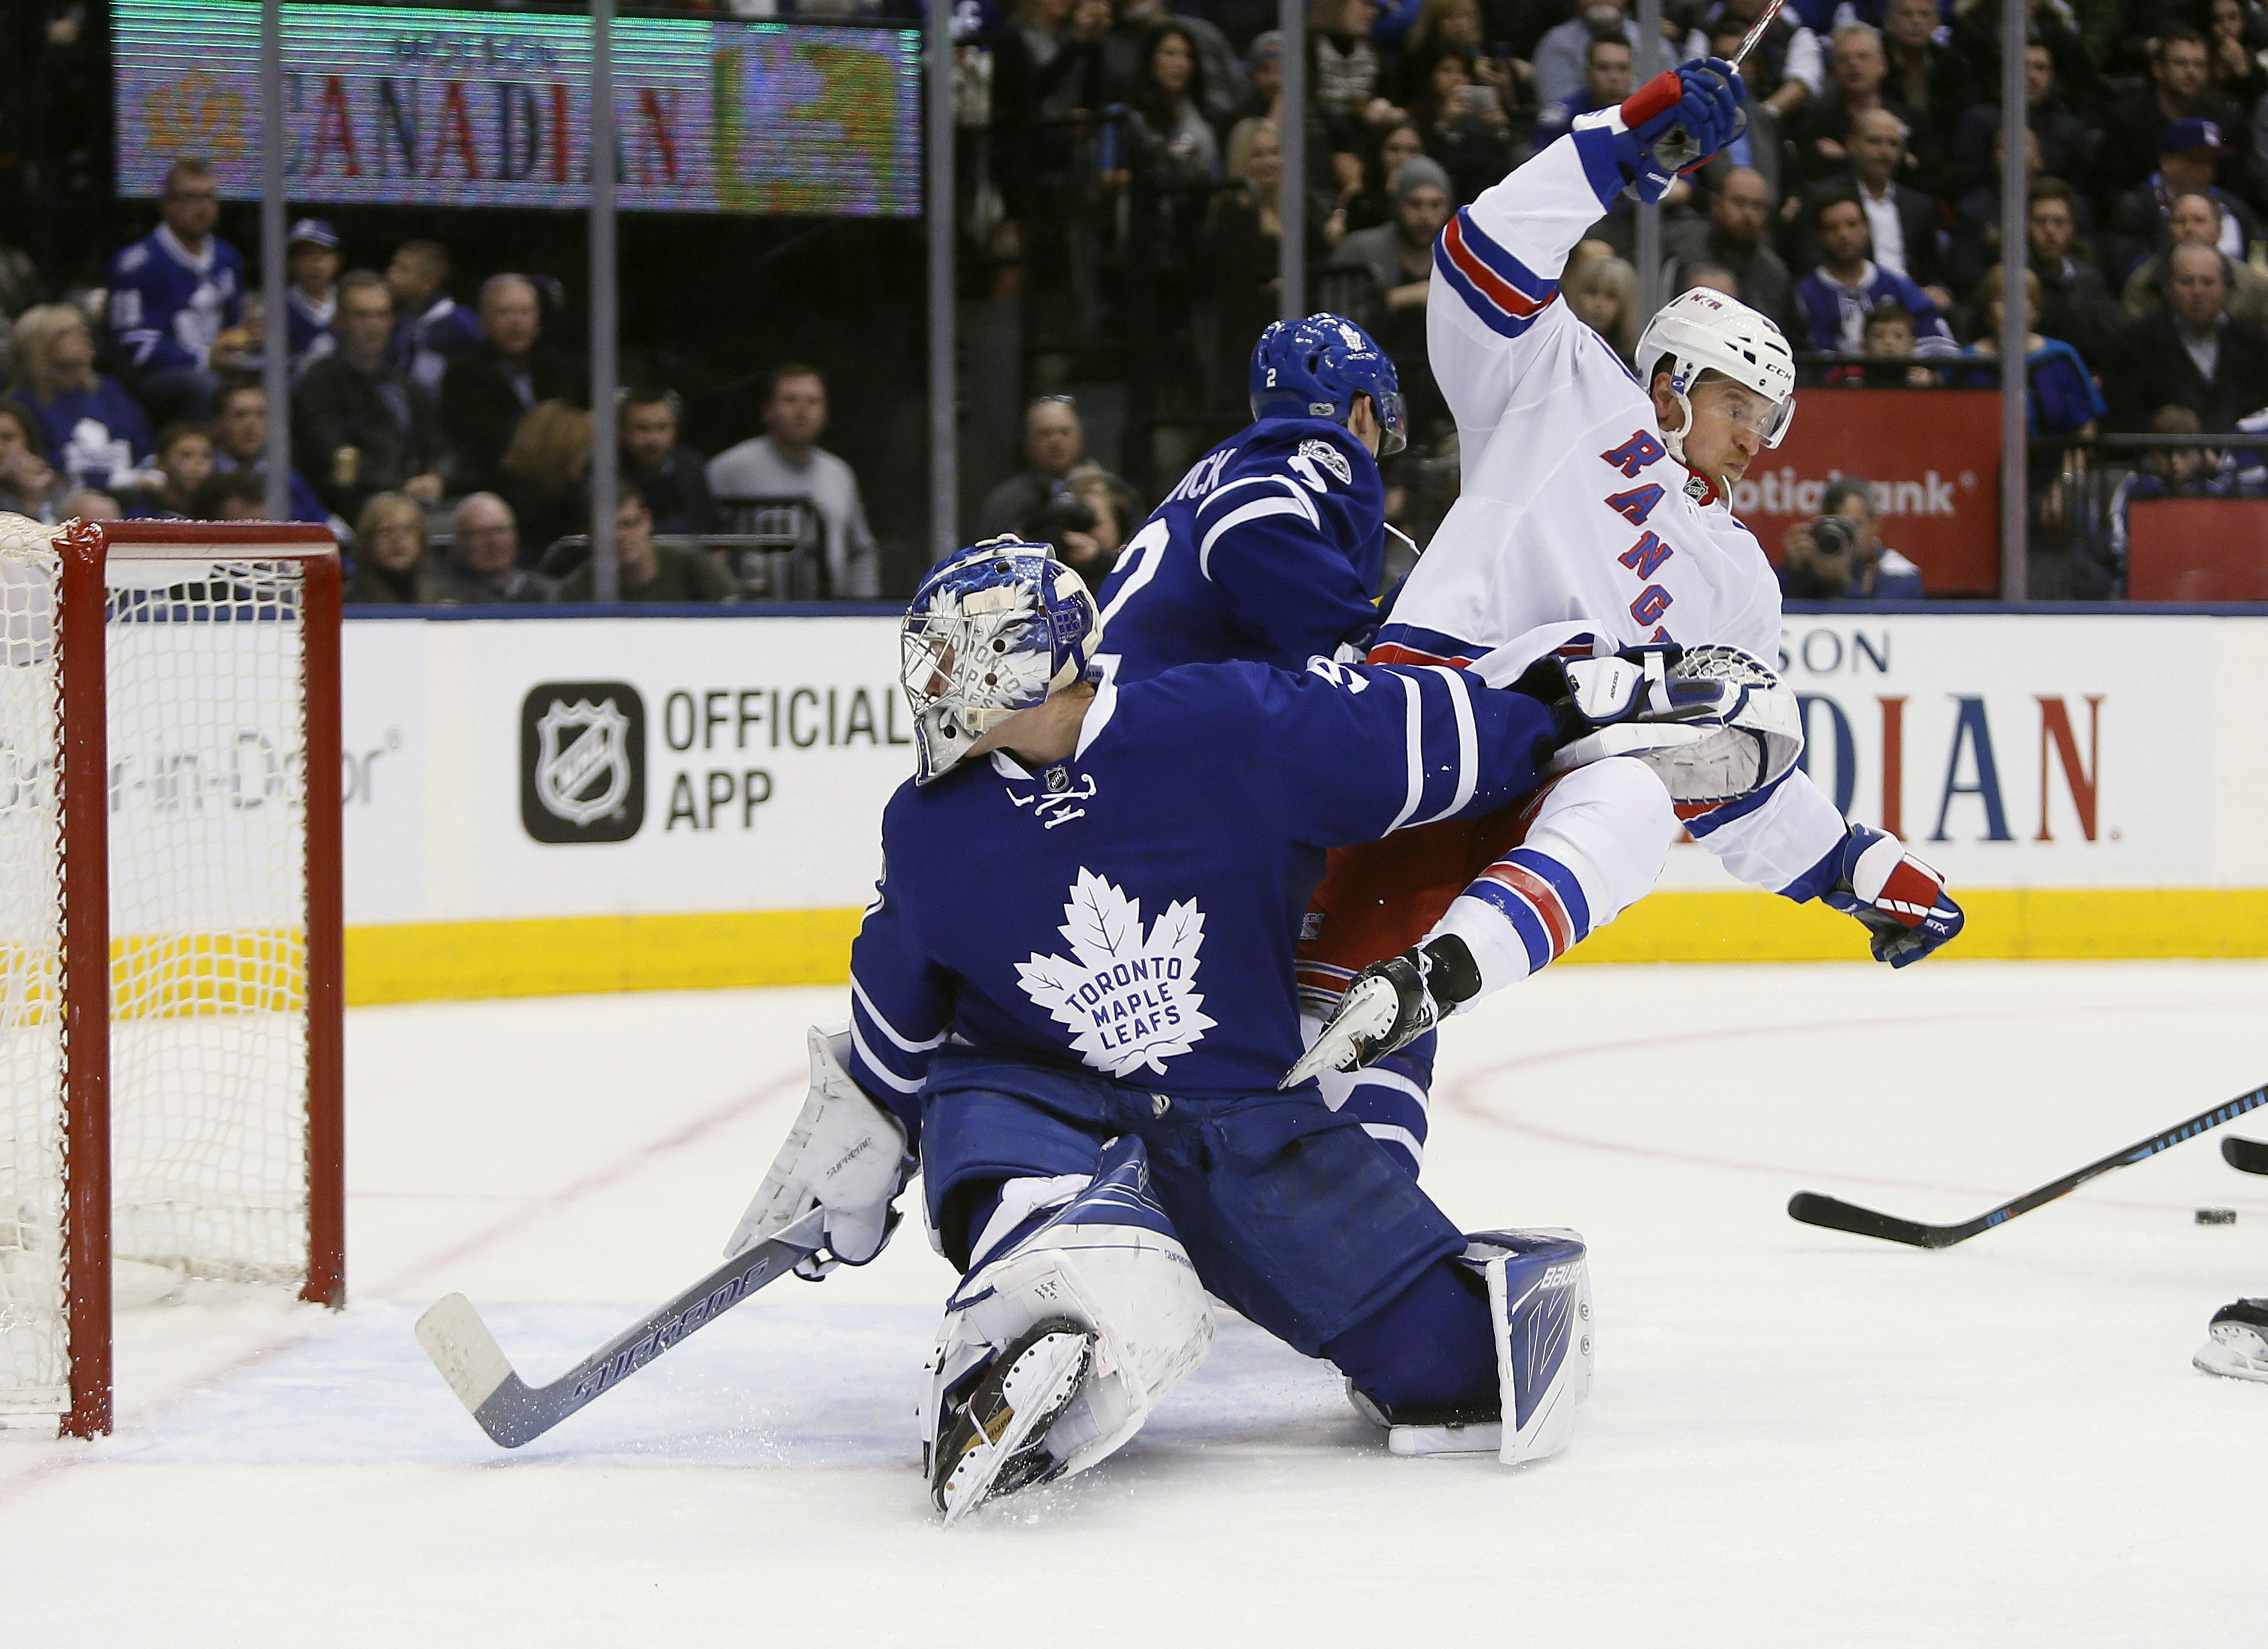 9822116-nhl-new-york-rangers-at-toronto-maple-leafs